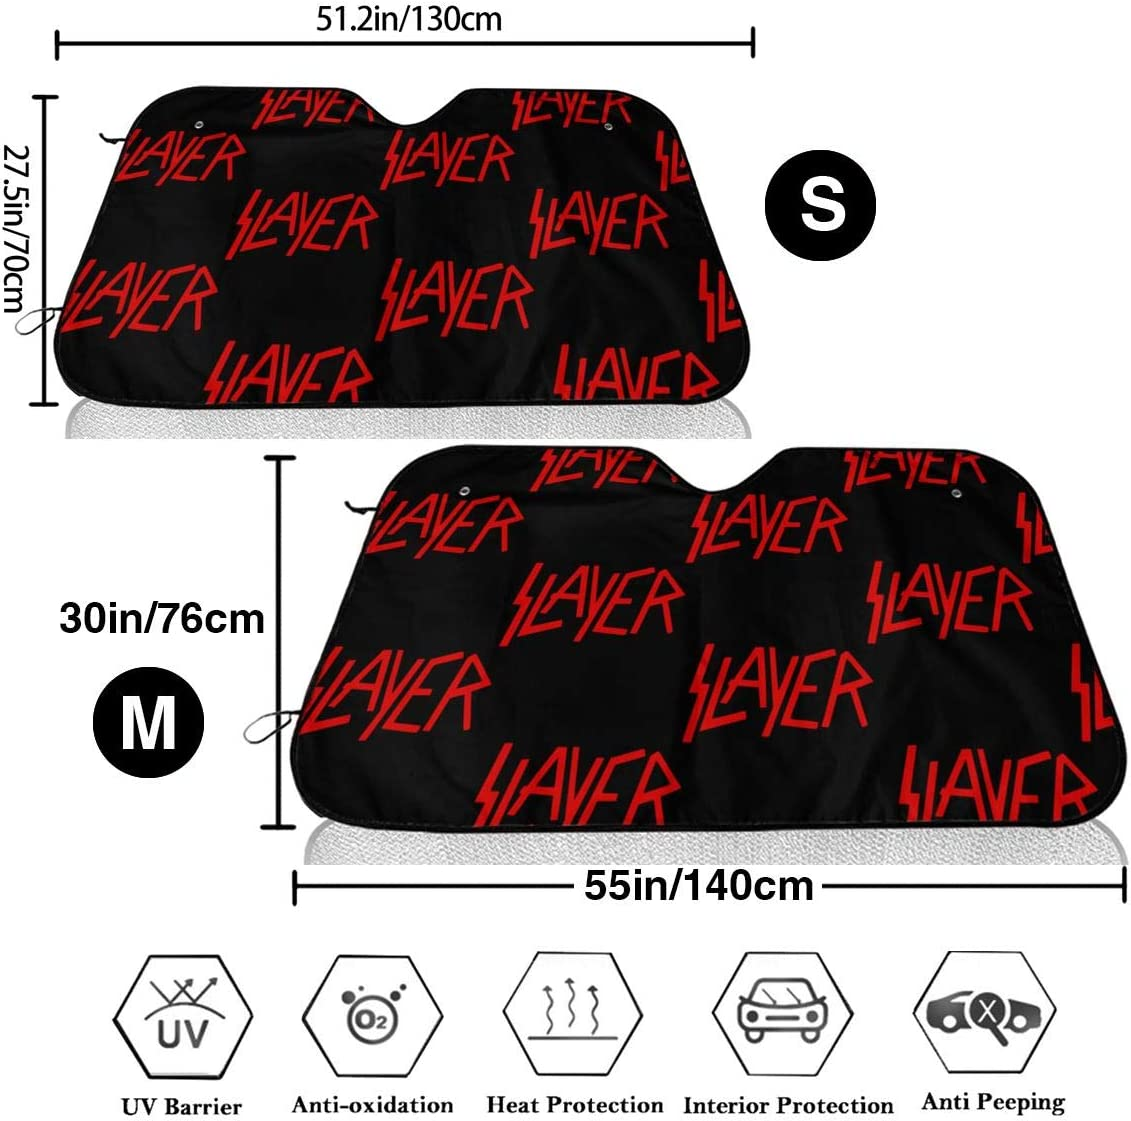 Easy to Use Slayer Car Sunshade to Keep Your Vehicle Cool and Damage Free Fits Windshields of Various Sizes